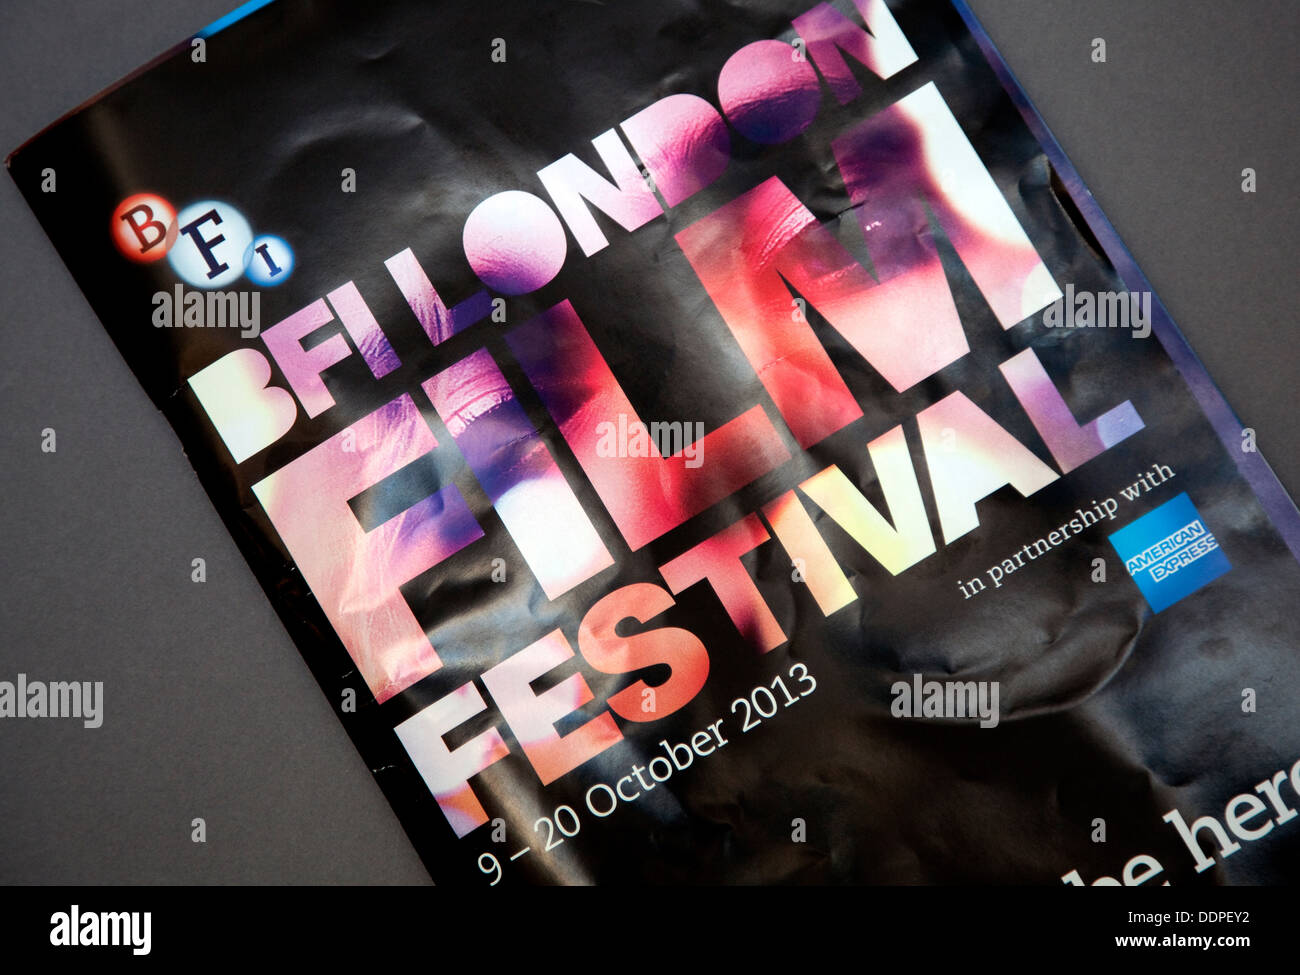 2013 BFI London Film Festival official programme - Stock Image